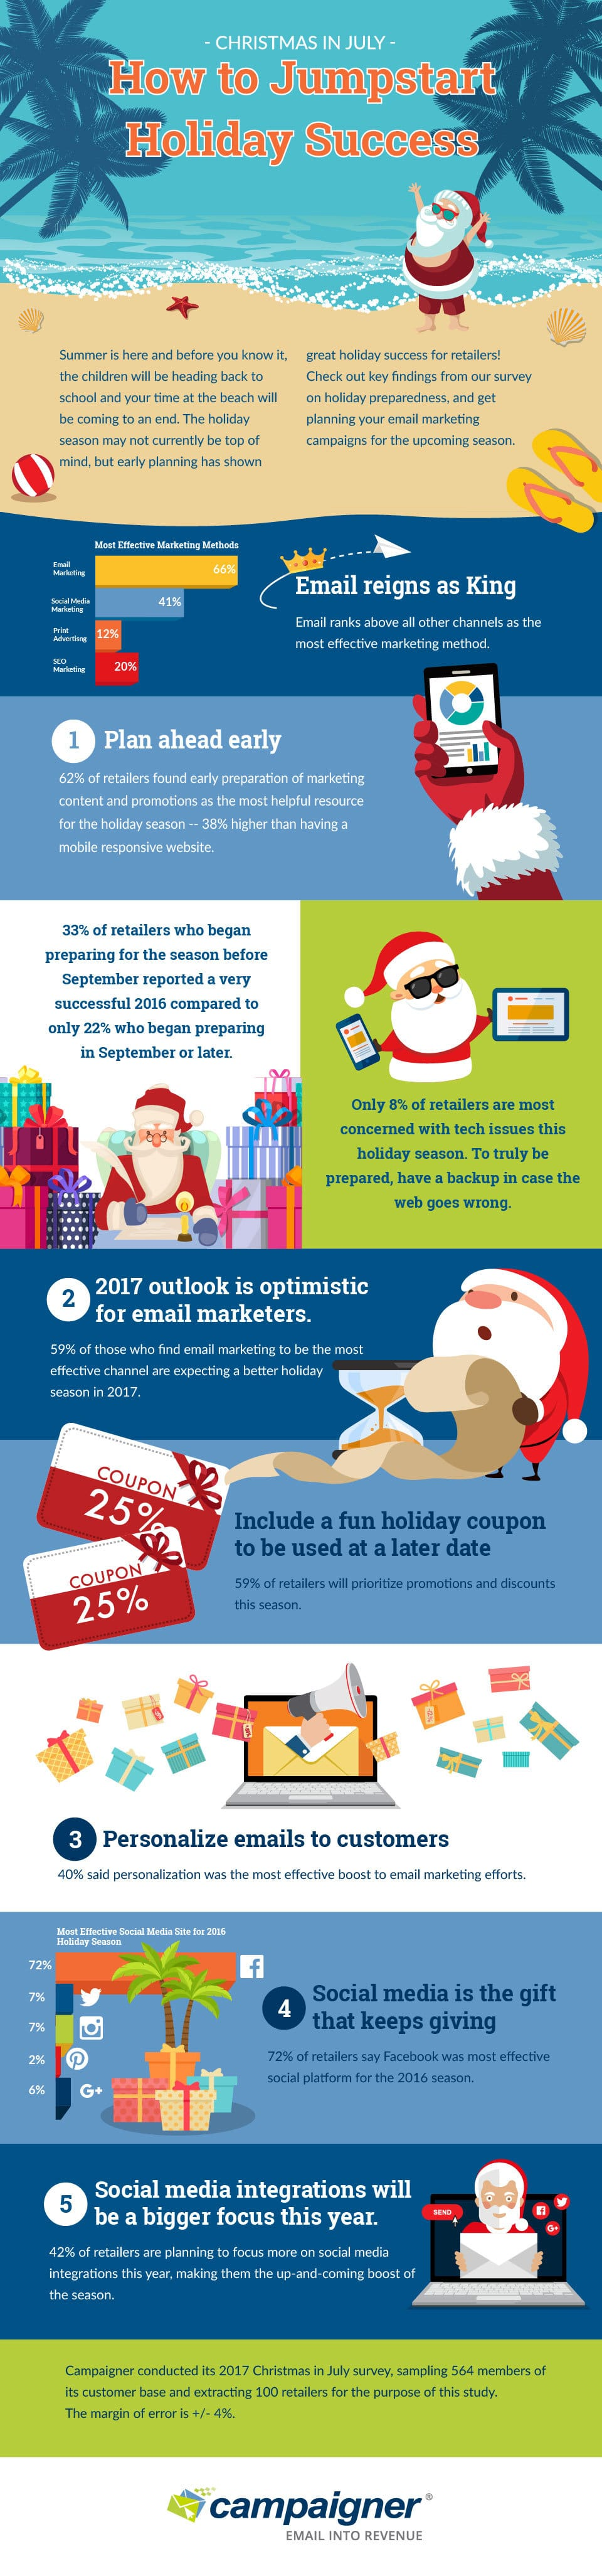 Retailers' most effective tactics in preparing for the holiday season